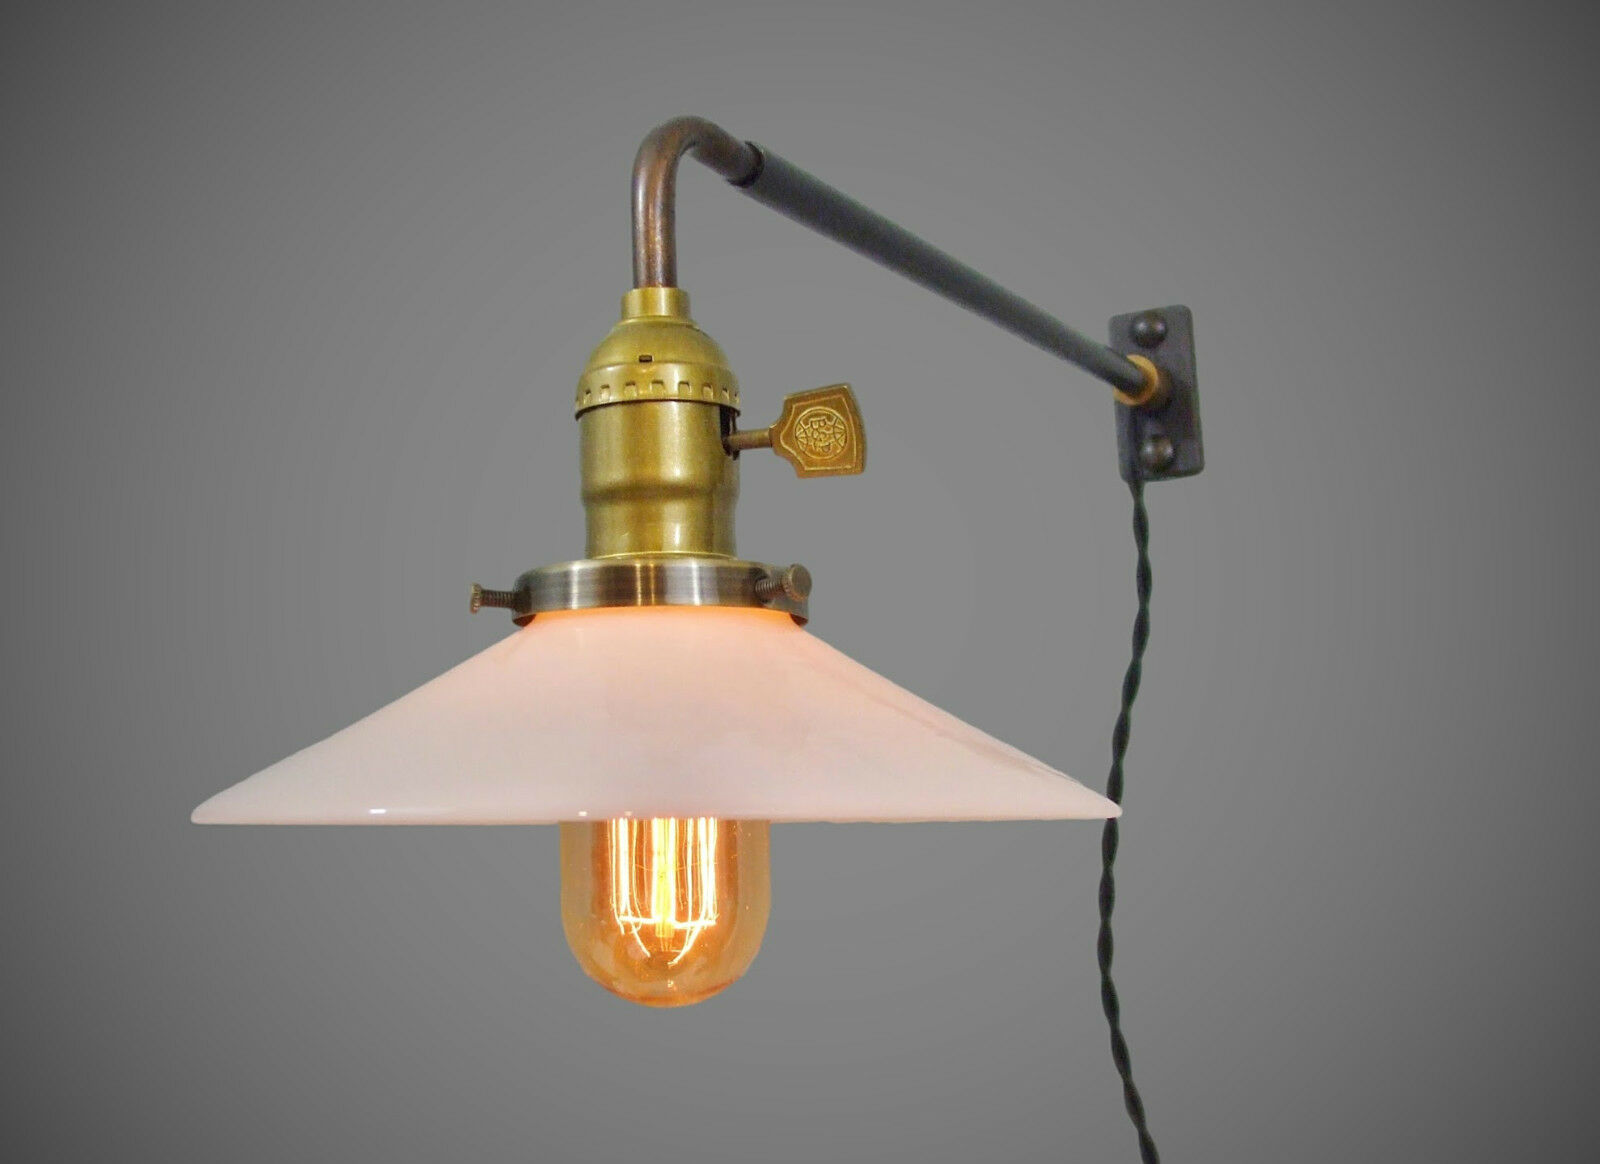 Wall Mount Lamp With Shade : Vintage Industrial Wall Mount Light - OPAL SHADE - Machine Age Milk Glass Lamp ?124.02 ...